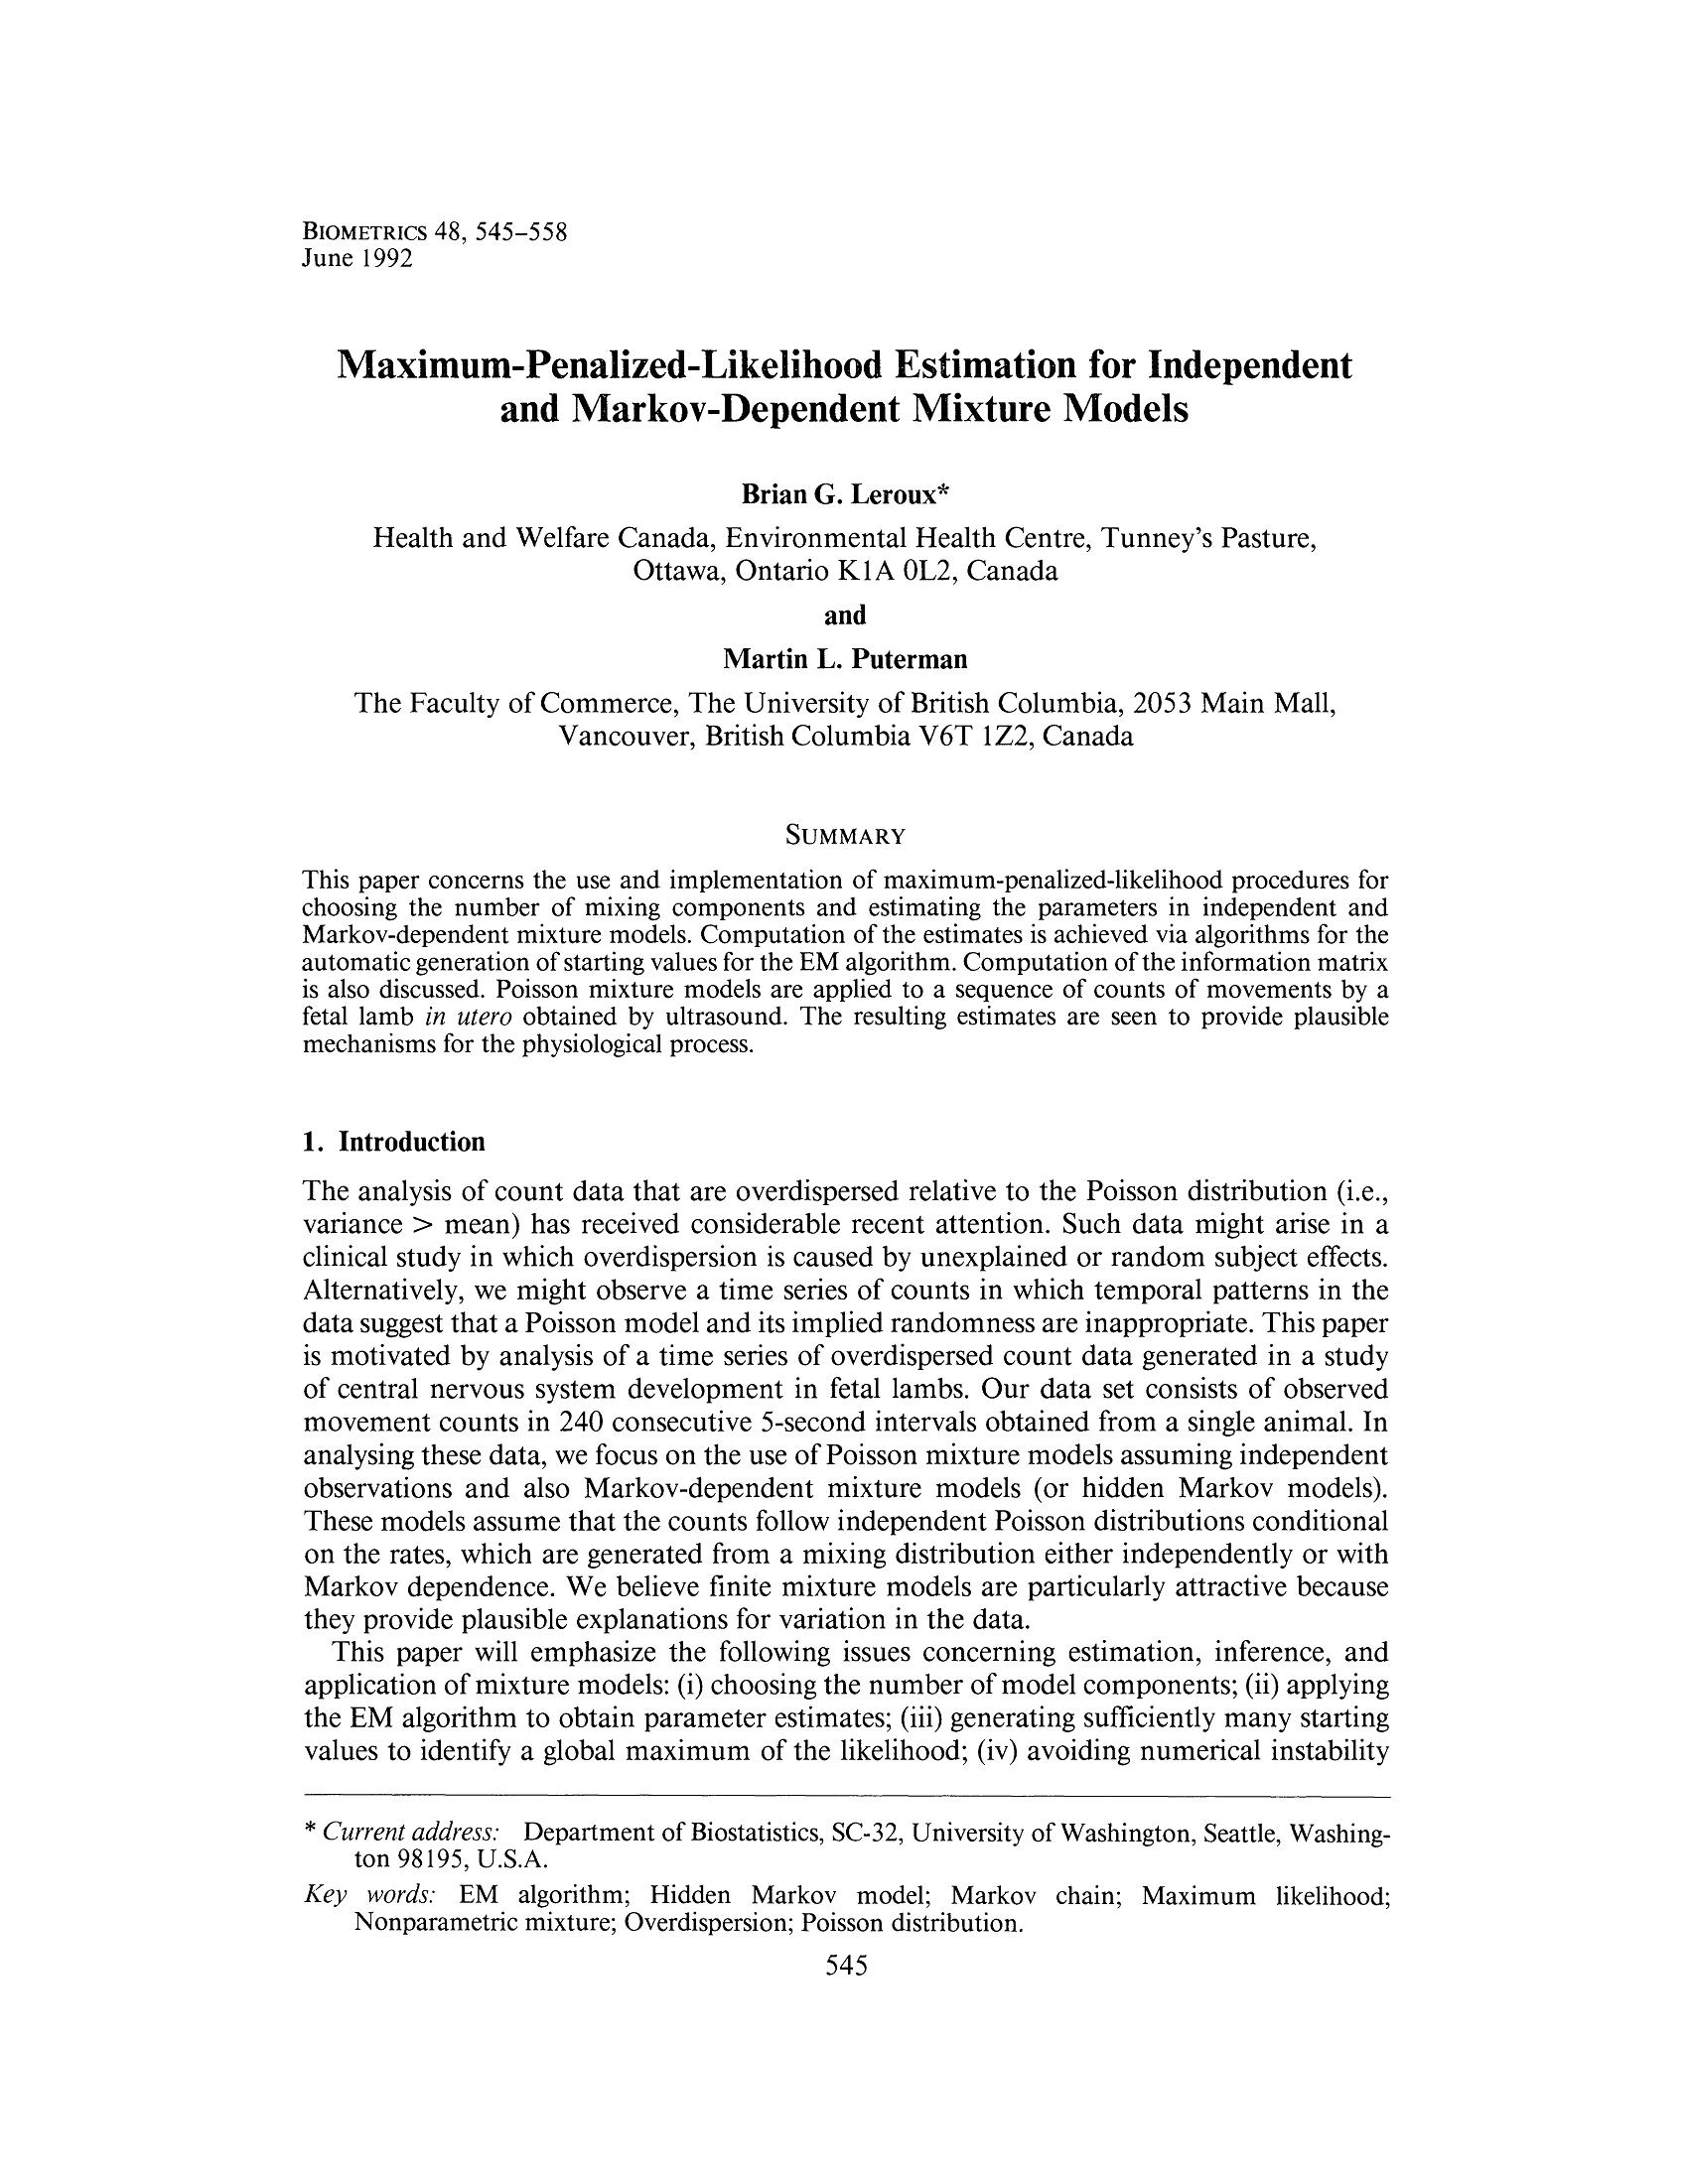 Maximum-Penalized-Likelihood Estimation for Independe and Markov-Dependent Mixture Models 14